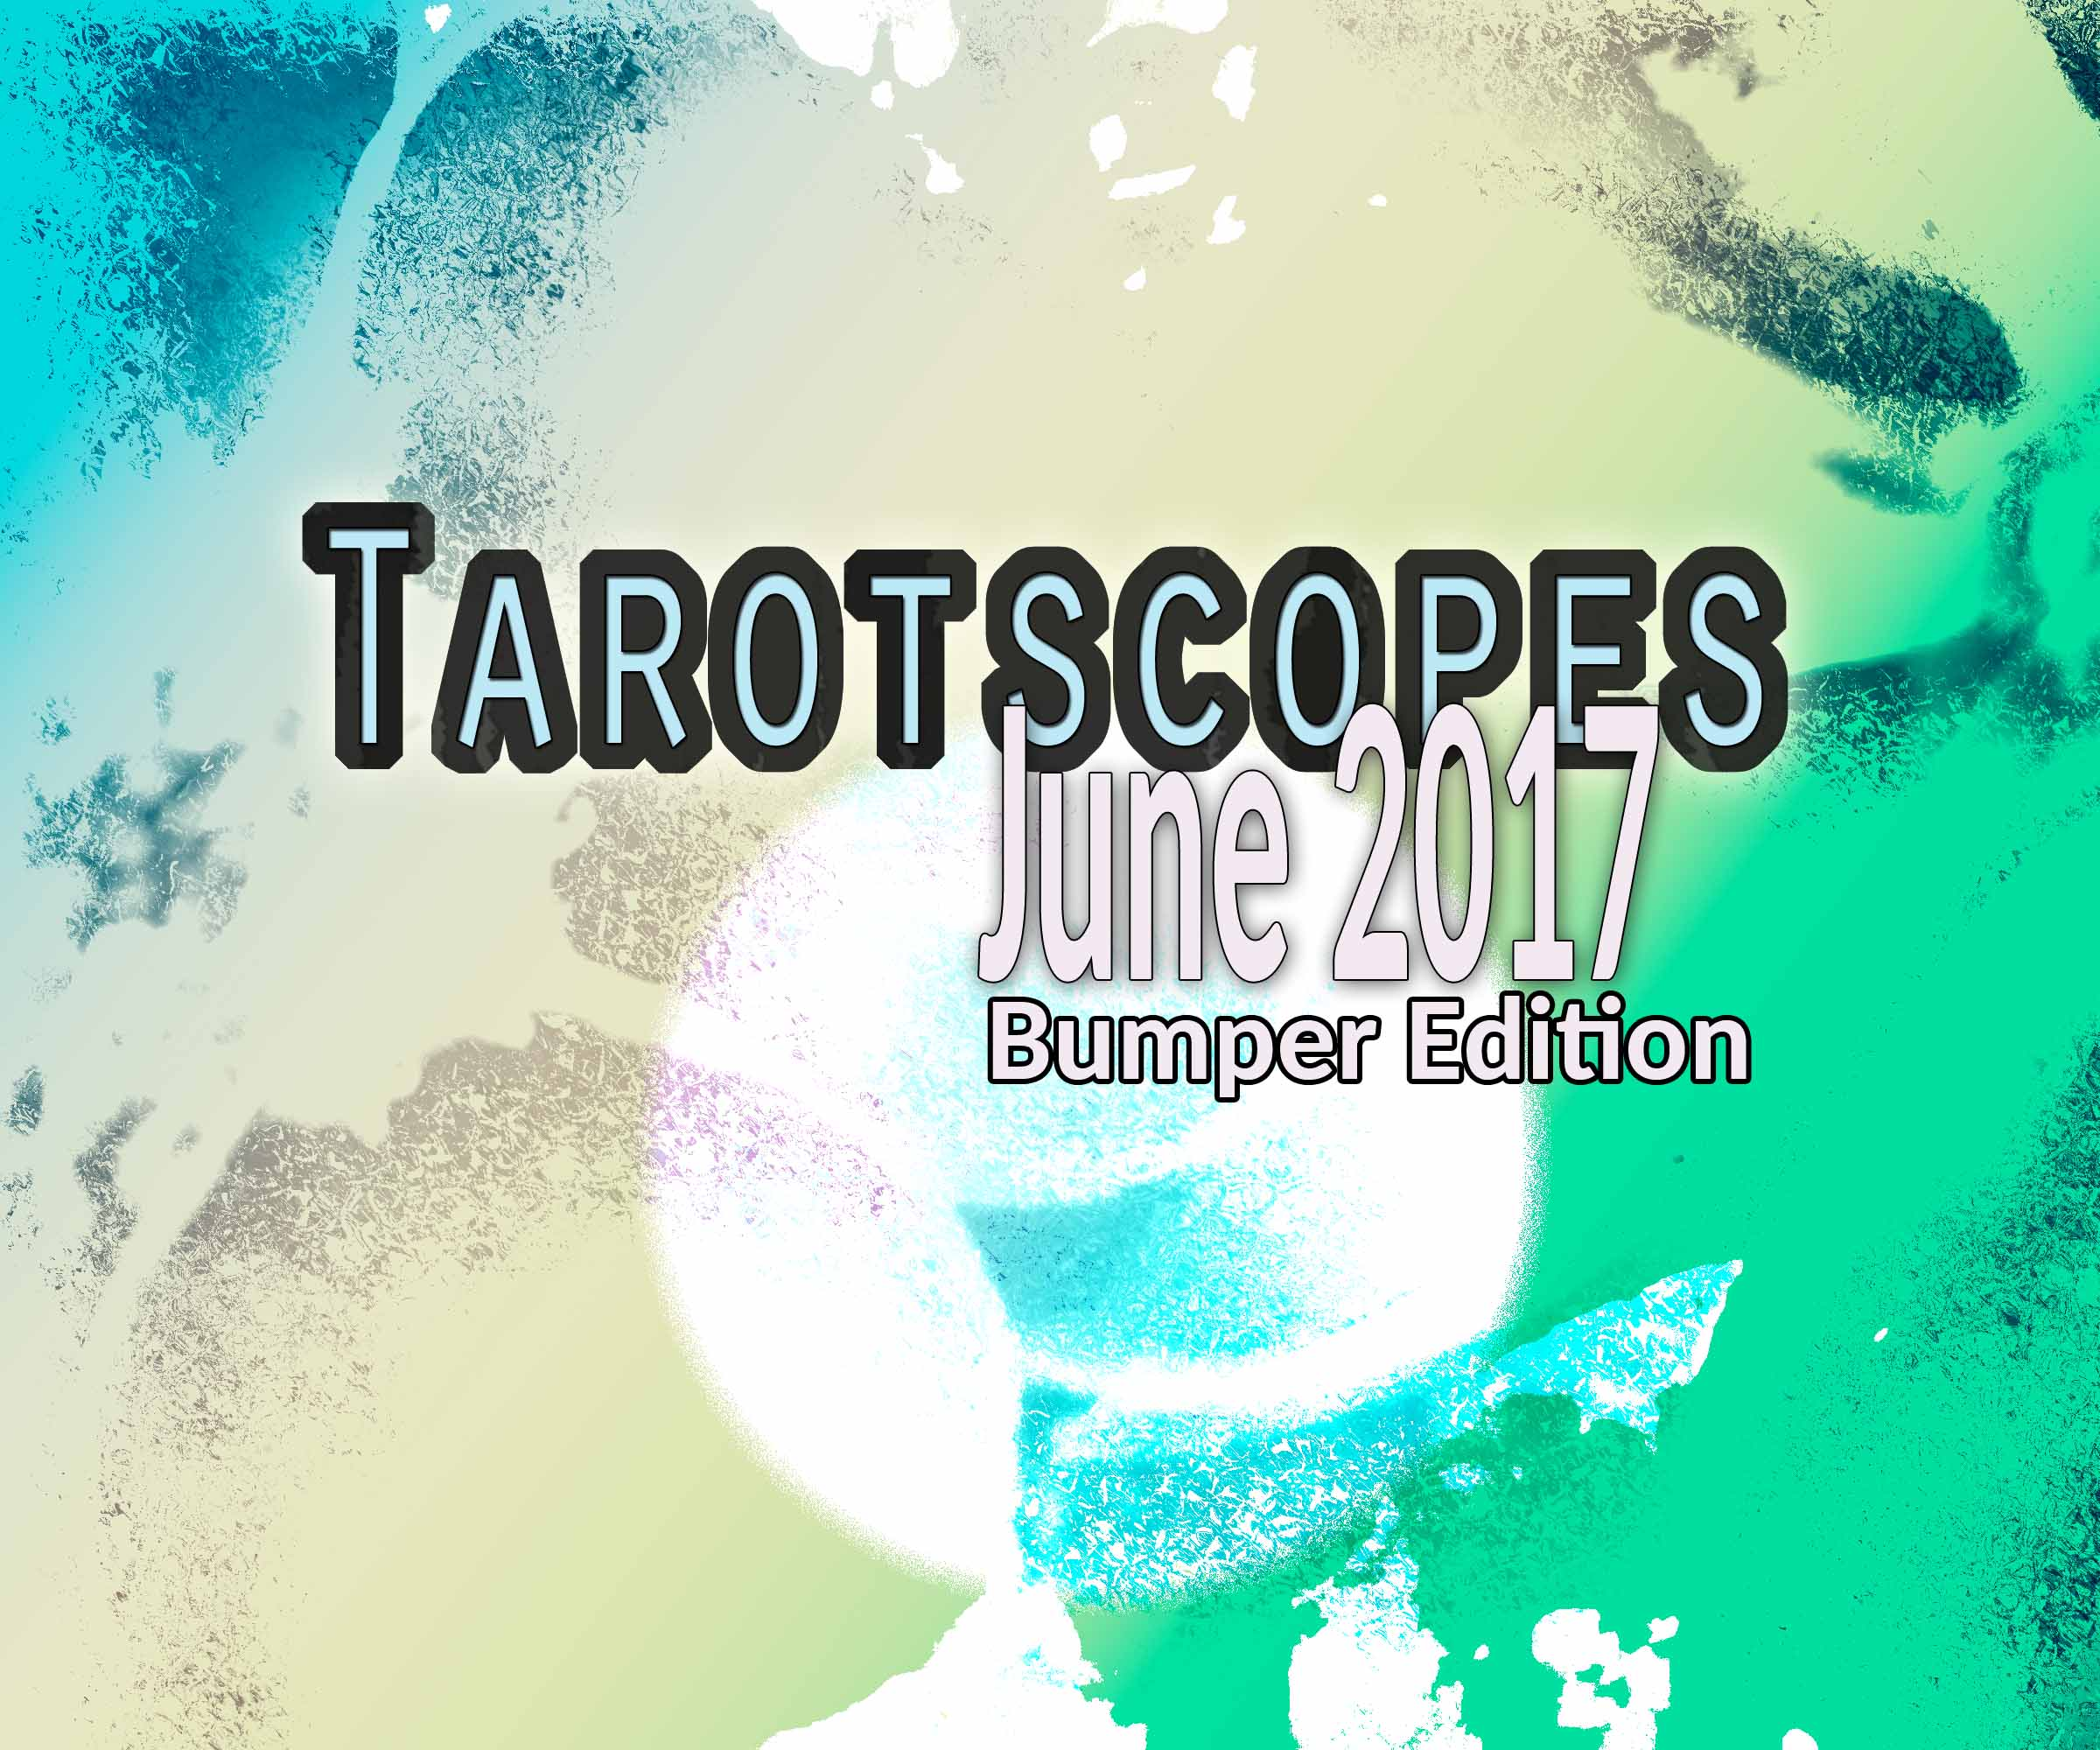 Tarotscopes June 2017 Bumper Edition!